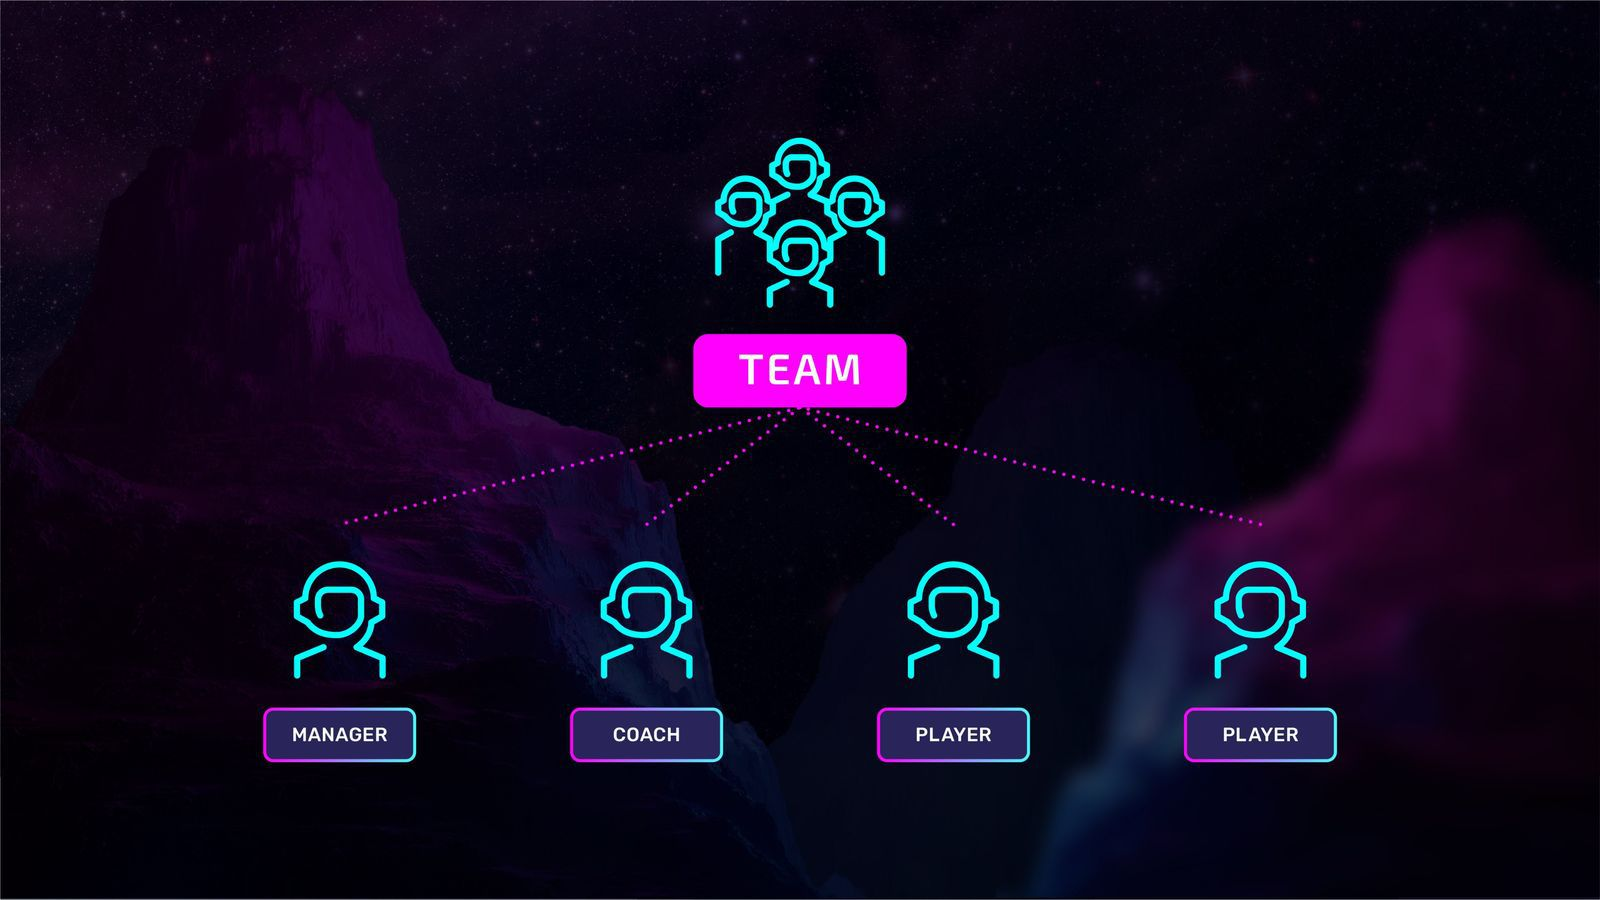 Want to build your own esports team?